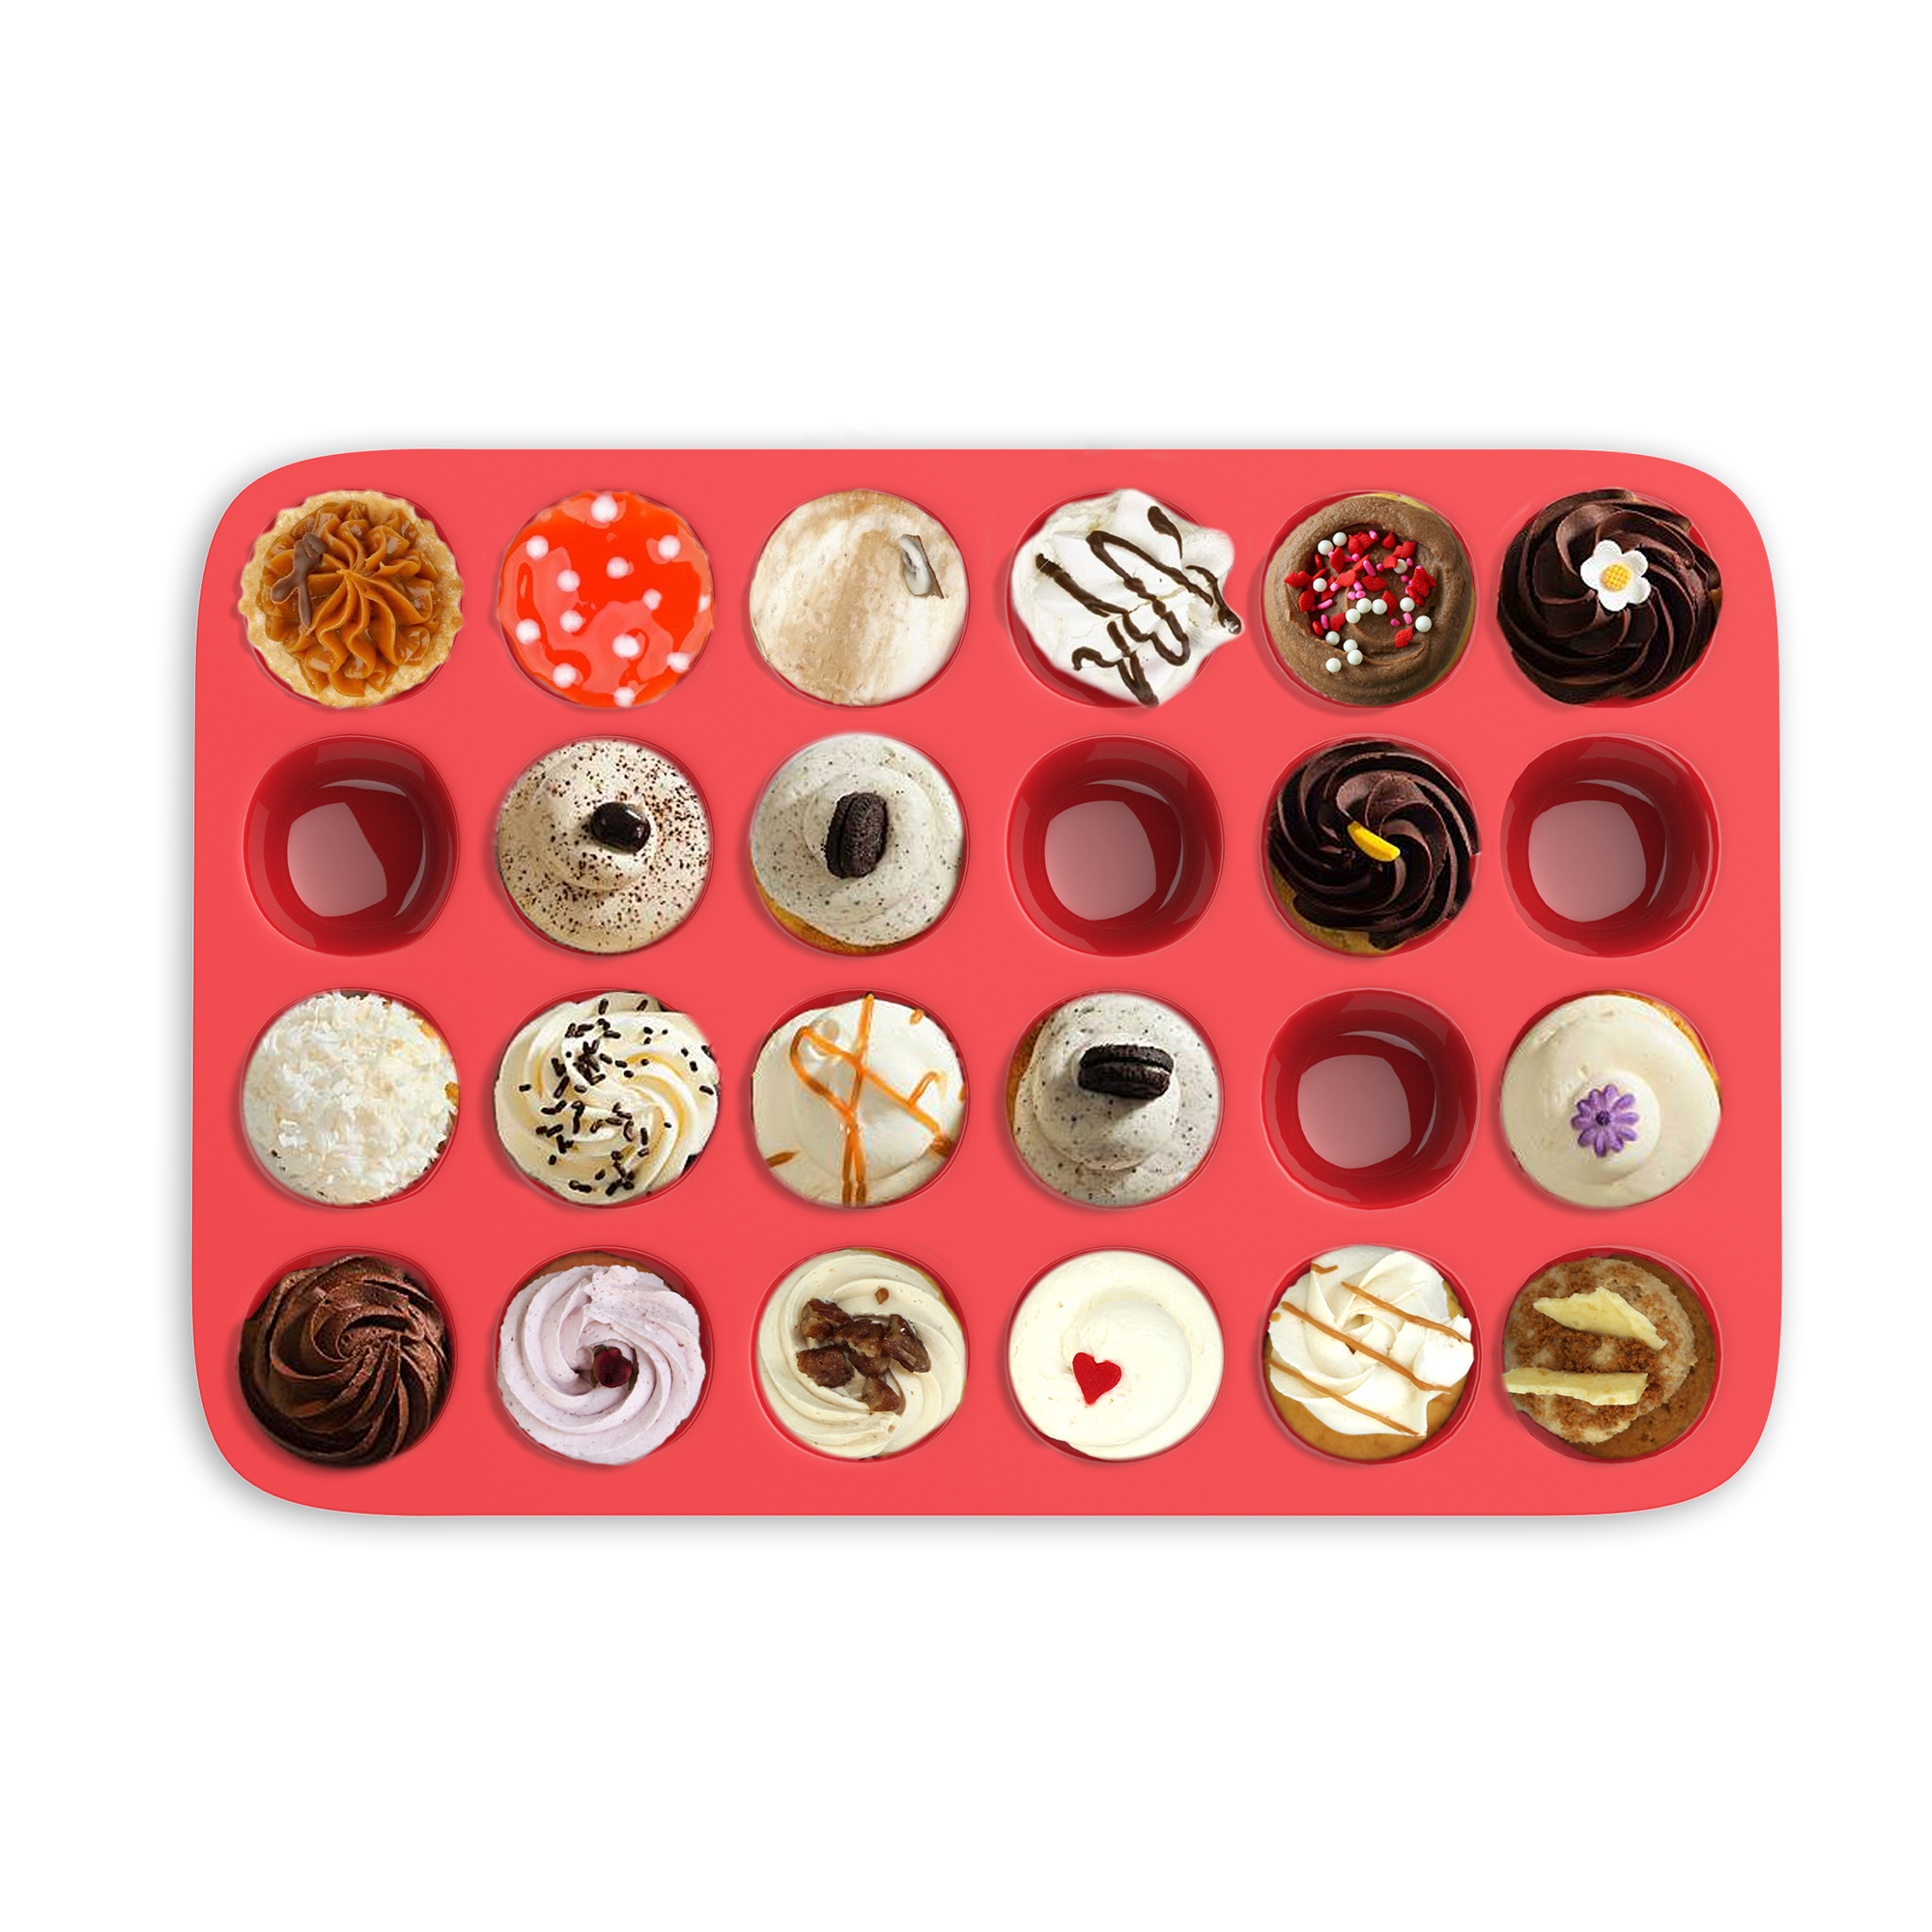 Mini Muffin Pan Silicone Nonstick Cupcake Muffin Brownie Reusable Bakeware 24 Molds in Tray Colorful 59f742326d88eb13723811a9